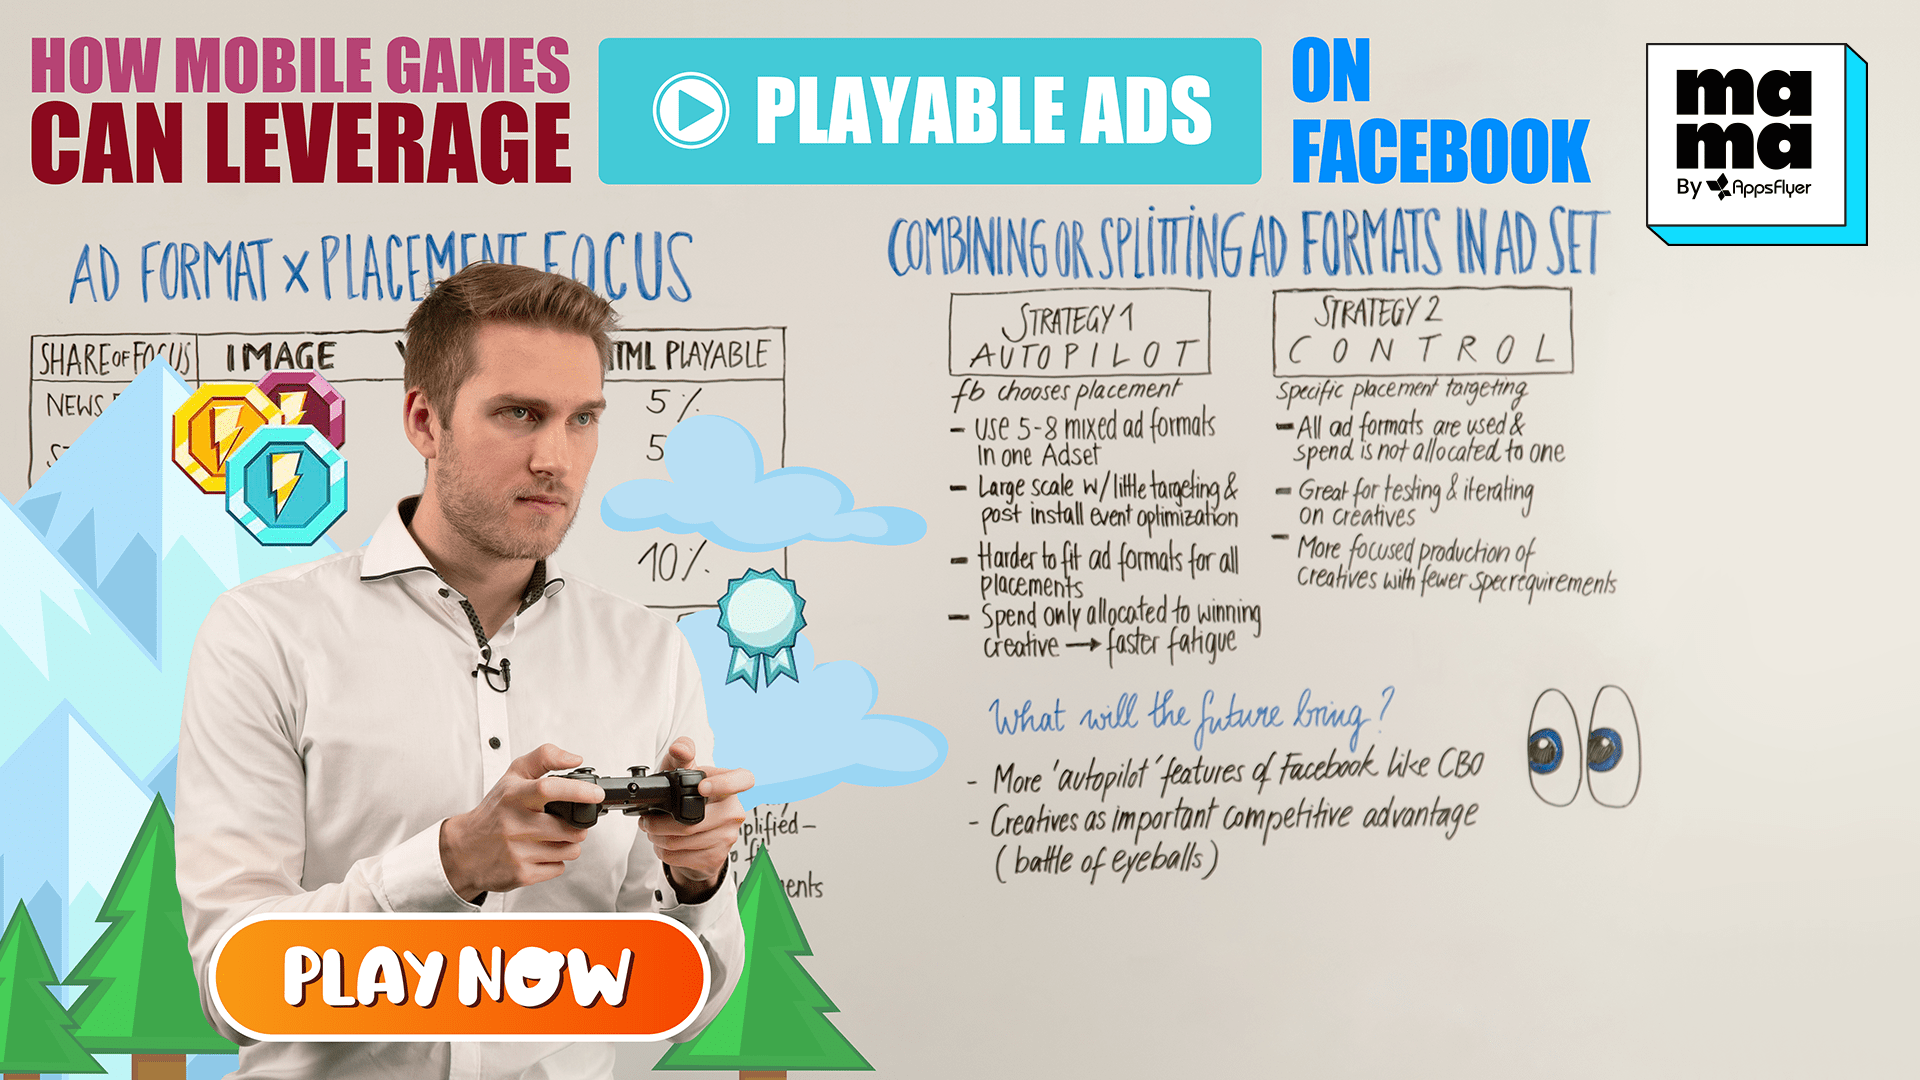 playable ads for gaming apps on facebook